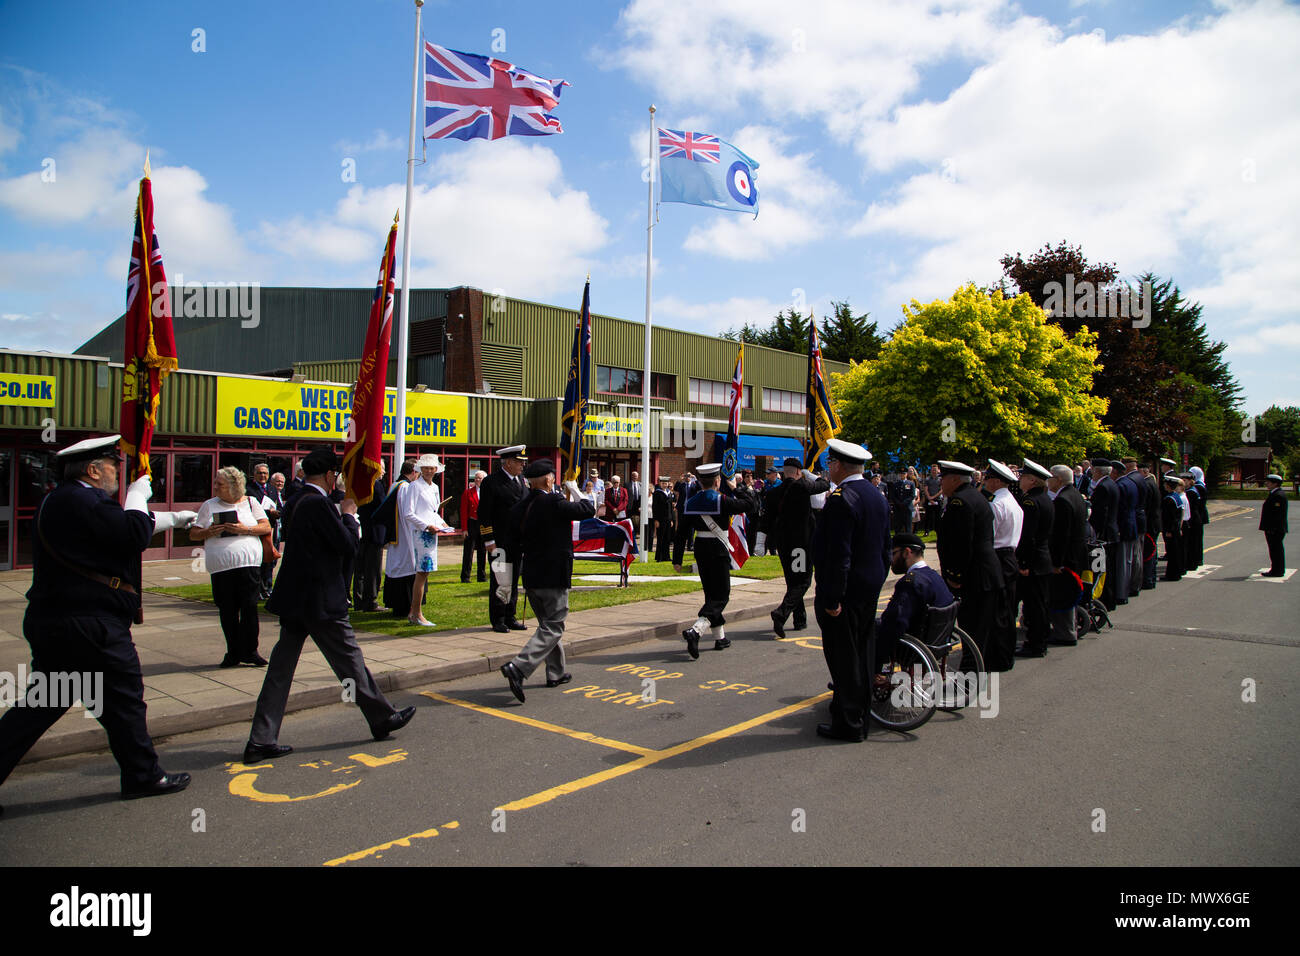 Gravesend Airport, Kent, UK. 2nd Jun, 2018. March in by the Royal British Legion Service Associations and cadets at the new bench memorial at cascades leisure centre which was once the site of Gravesend airport which played a vital role in the second world war. Credit A Beck/Alamy Live. Credit: Andrew Beck/Alamy Live News - Stock Image